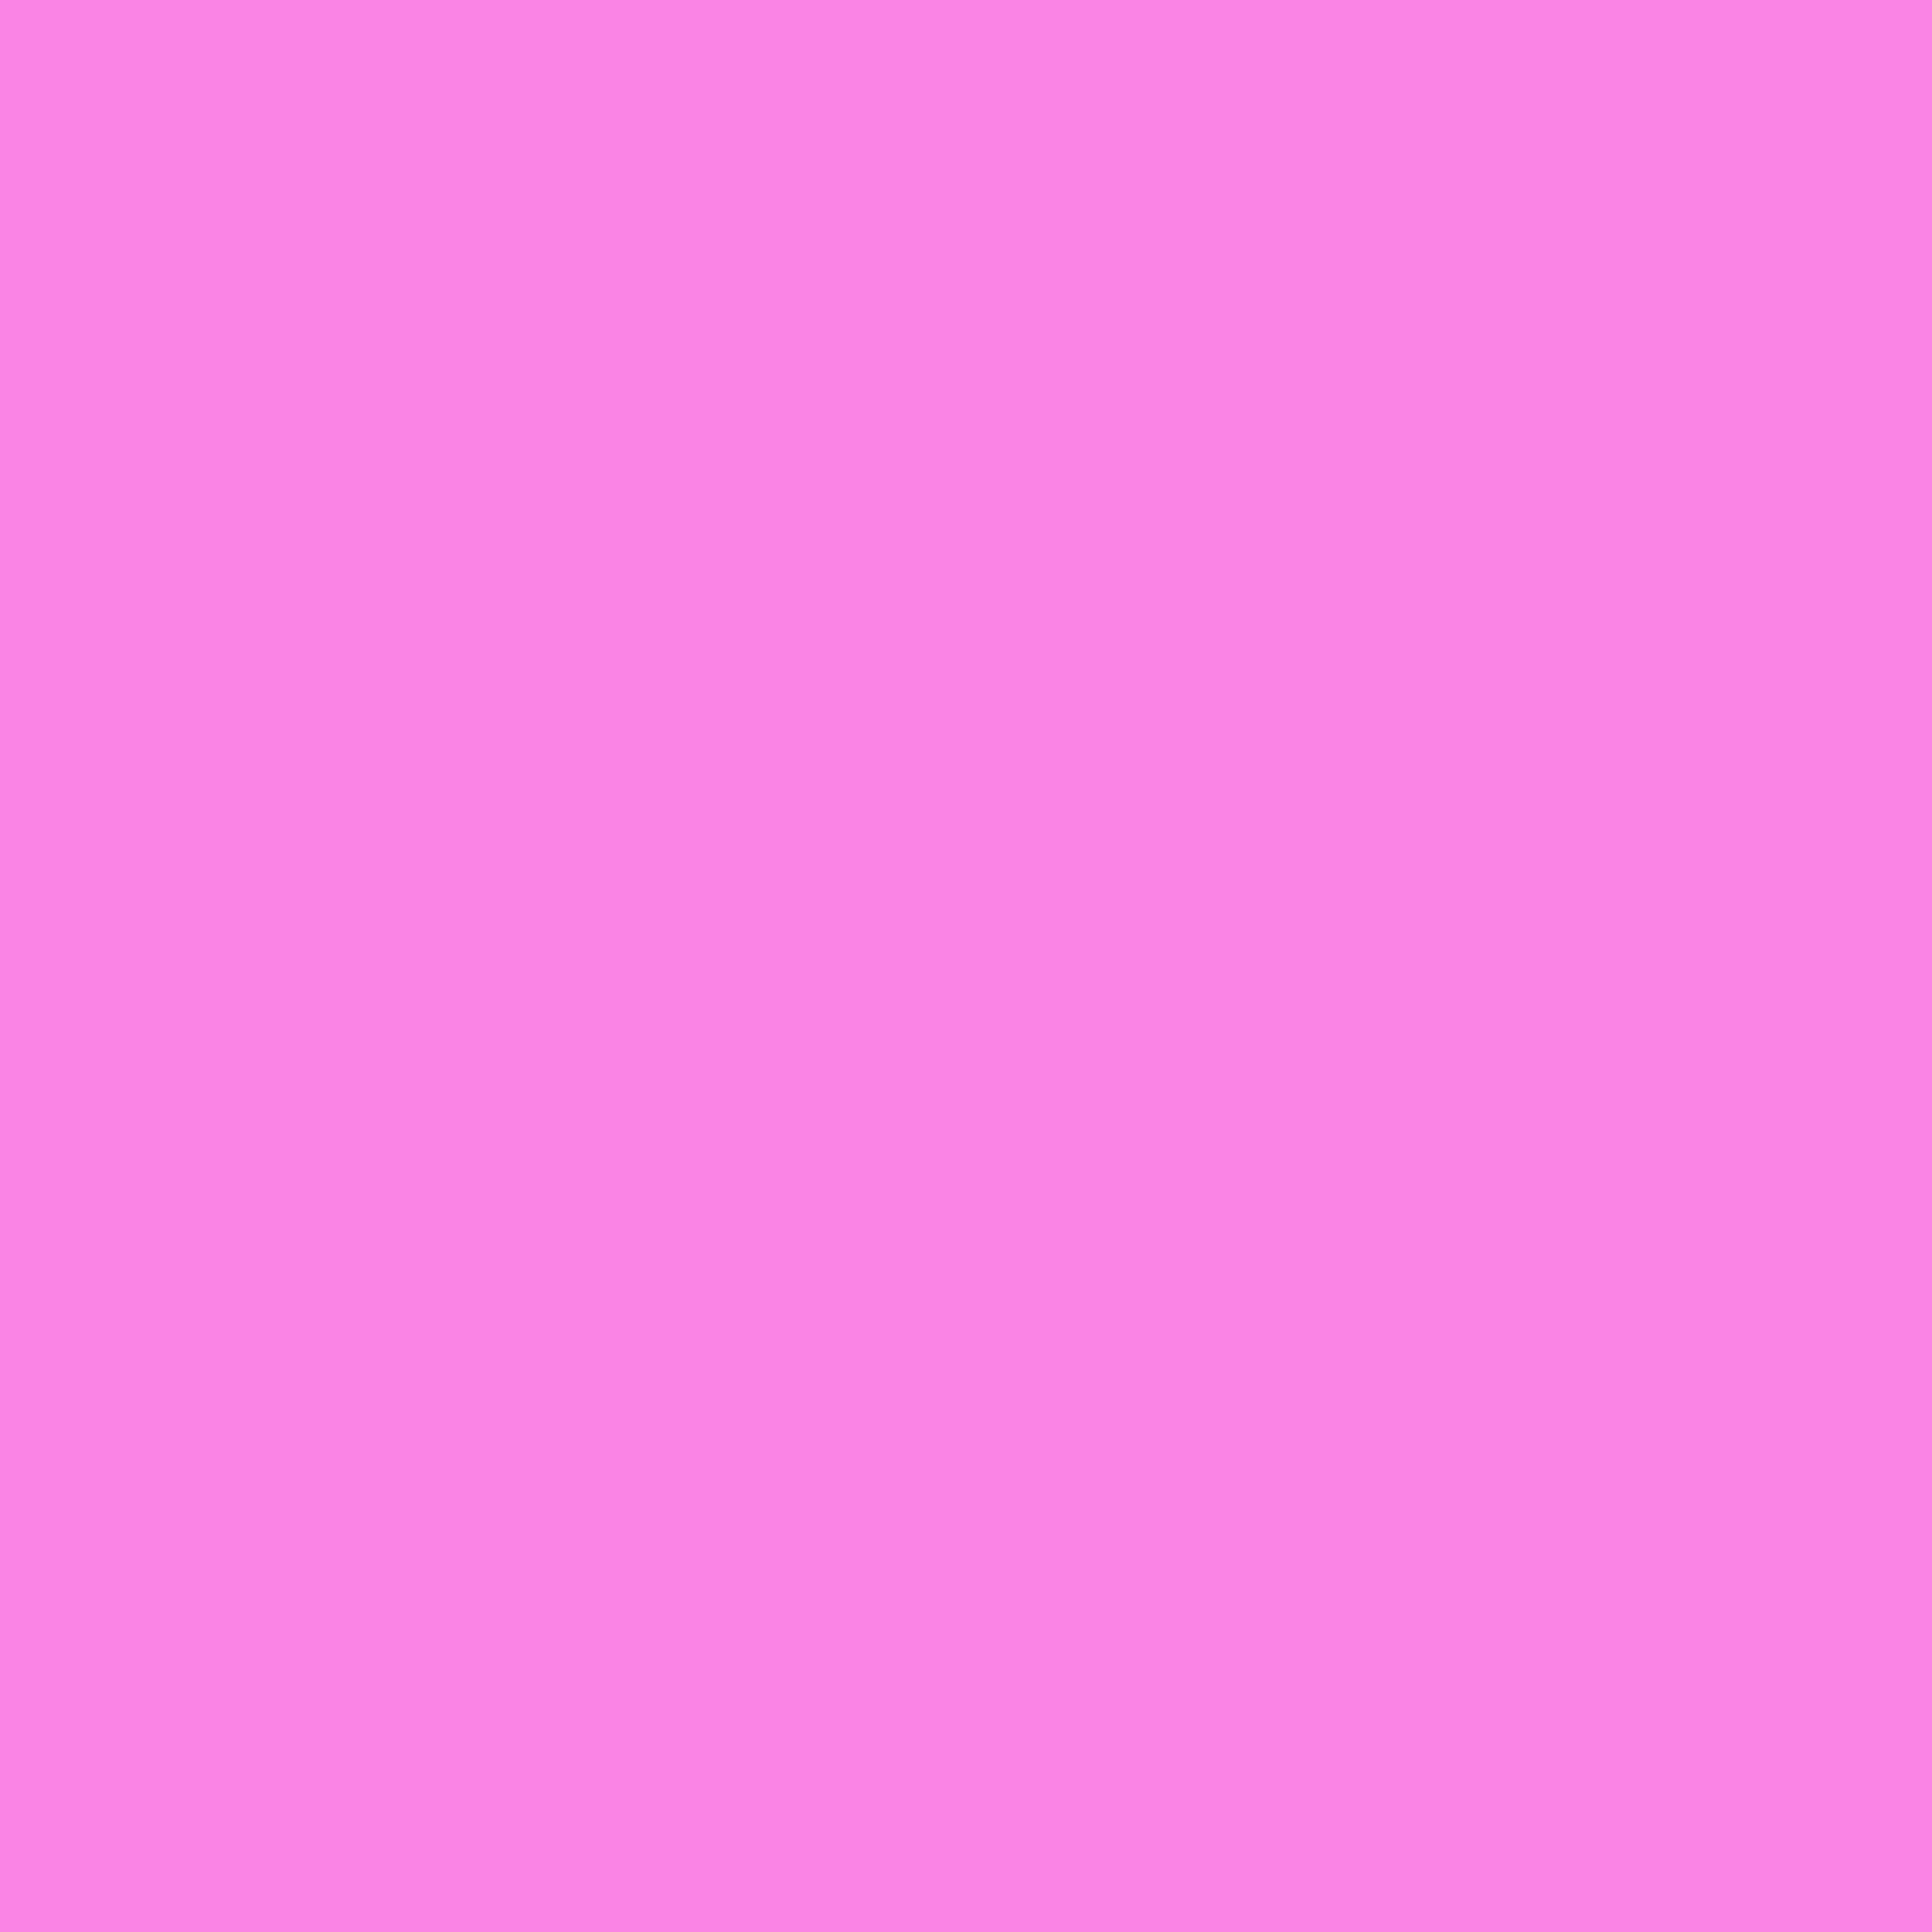 2048x2048 Pale Magenta Solid Color Background